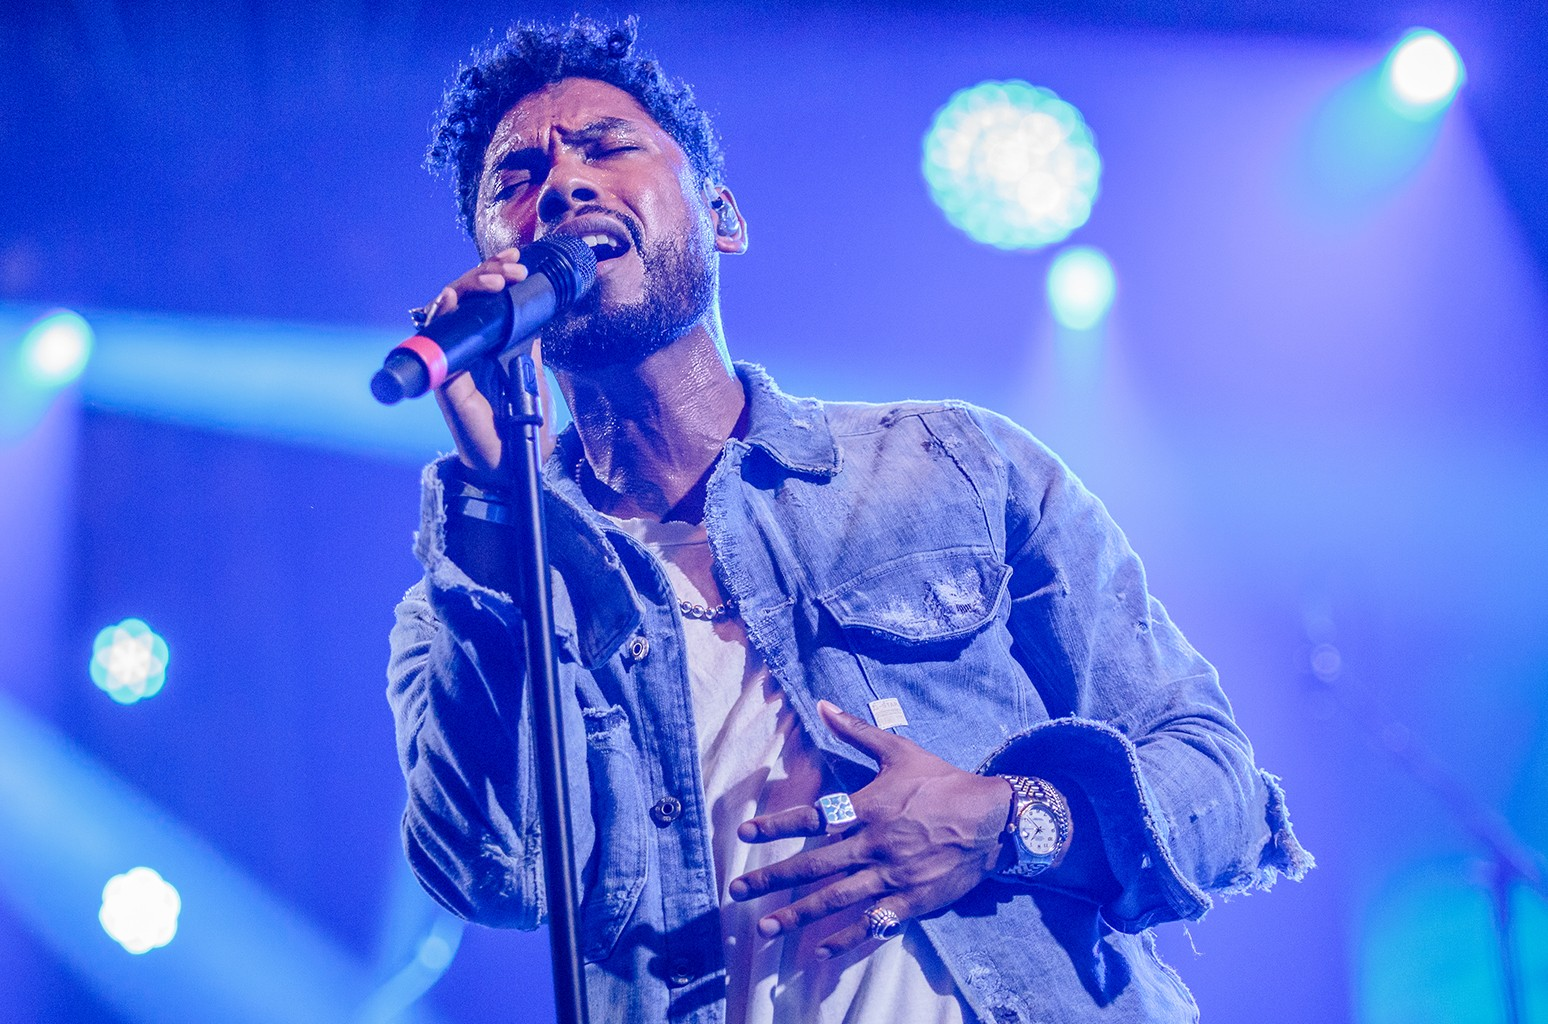 Miguel performs during the Bonnaroo Music & Arts Festival